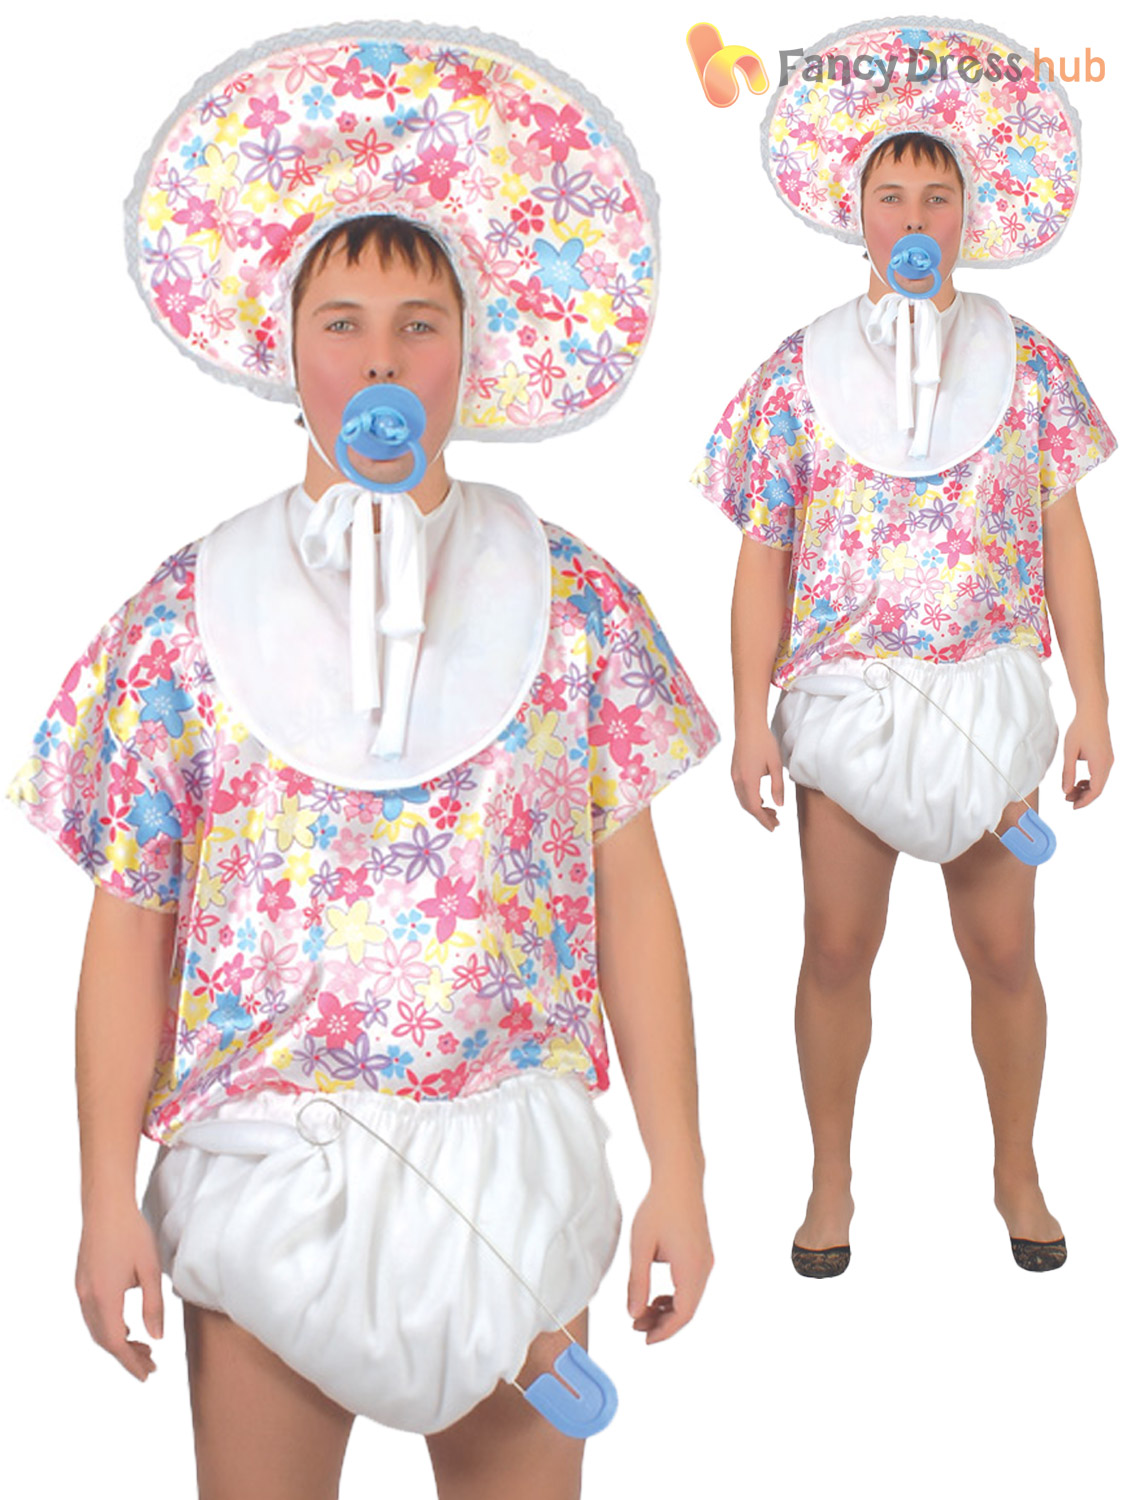 a95746287e6b Mens Baby Costume   Adults-Big-Baby-Costume-Mens-Comedy-Novelty-Stag ...